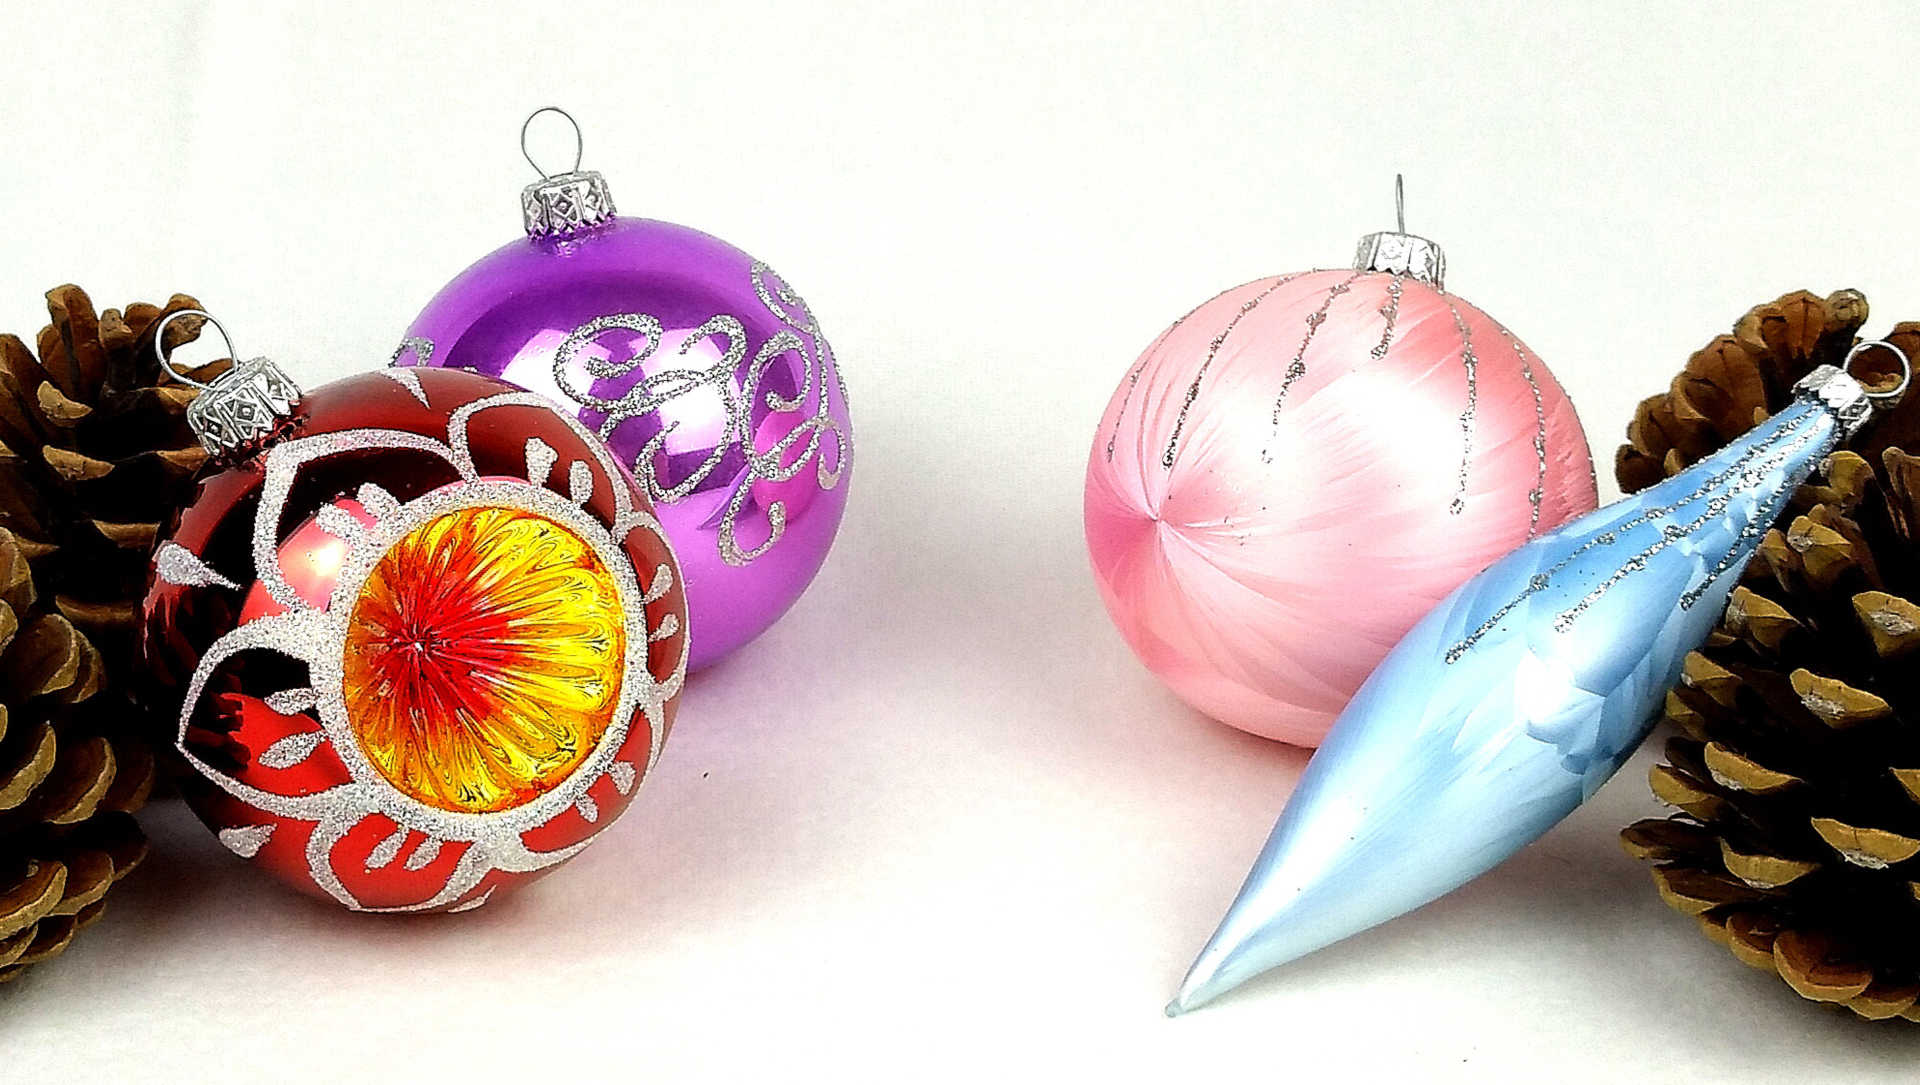 How glass Christmas ornaments are made